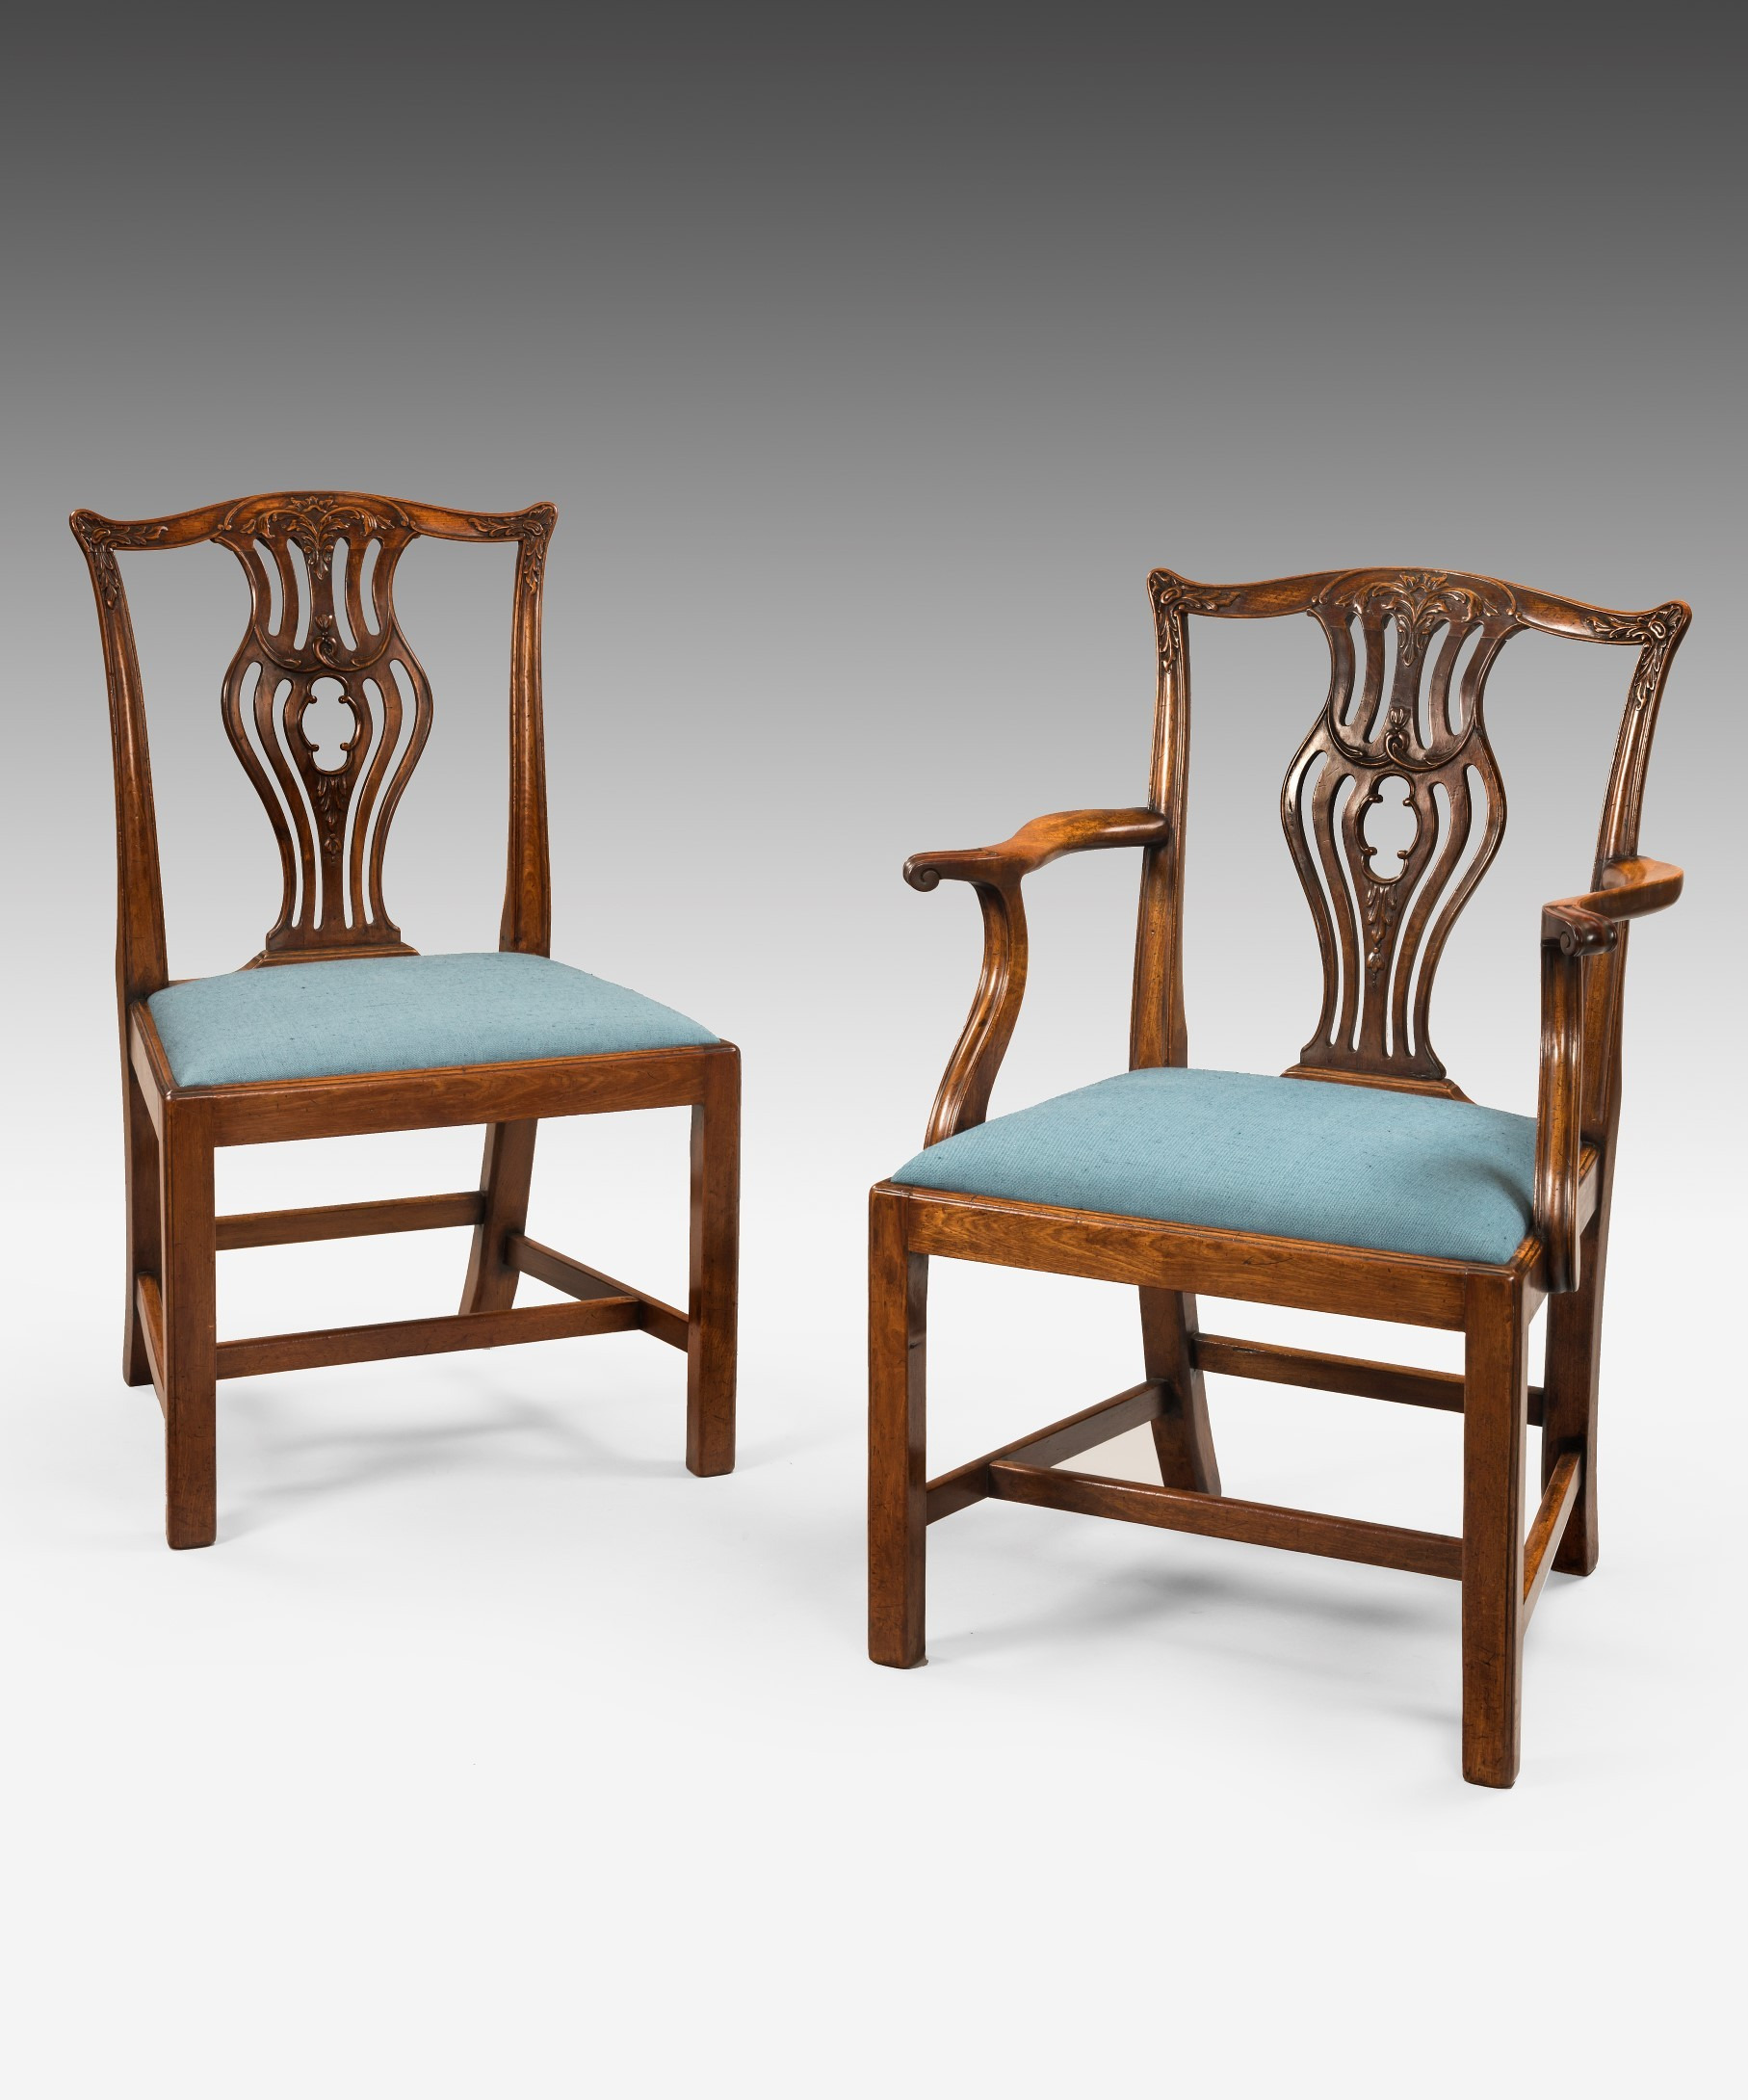 1010 Chairs Seating A set of 8 Chippendale dining chairs